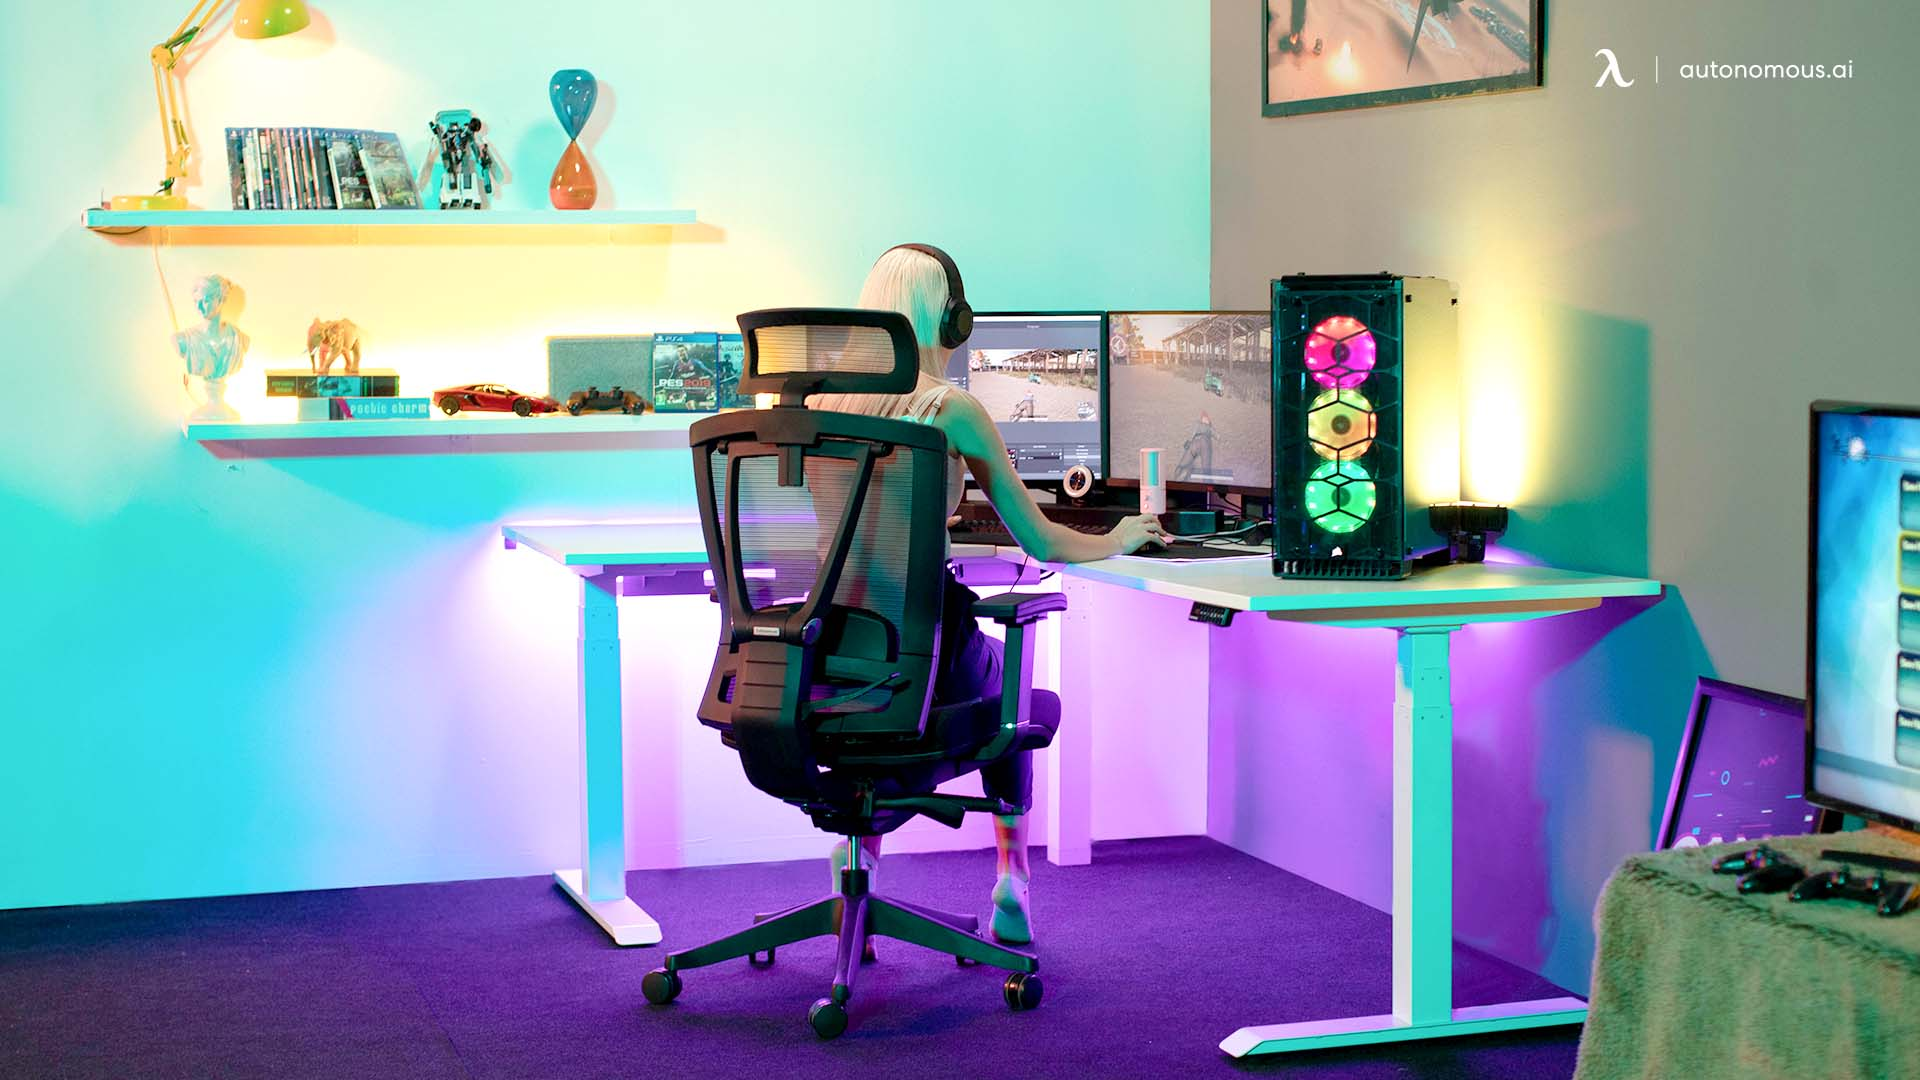 Things to Consider When Getting an Adjustable Gaming Desk